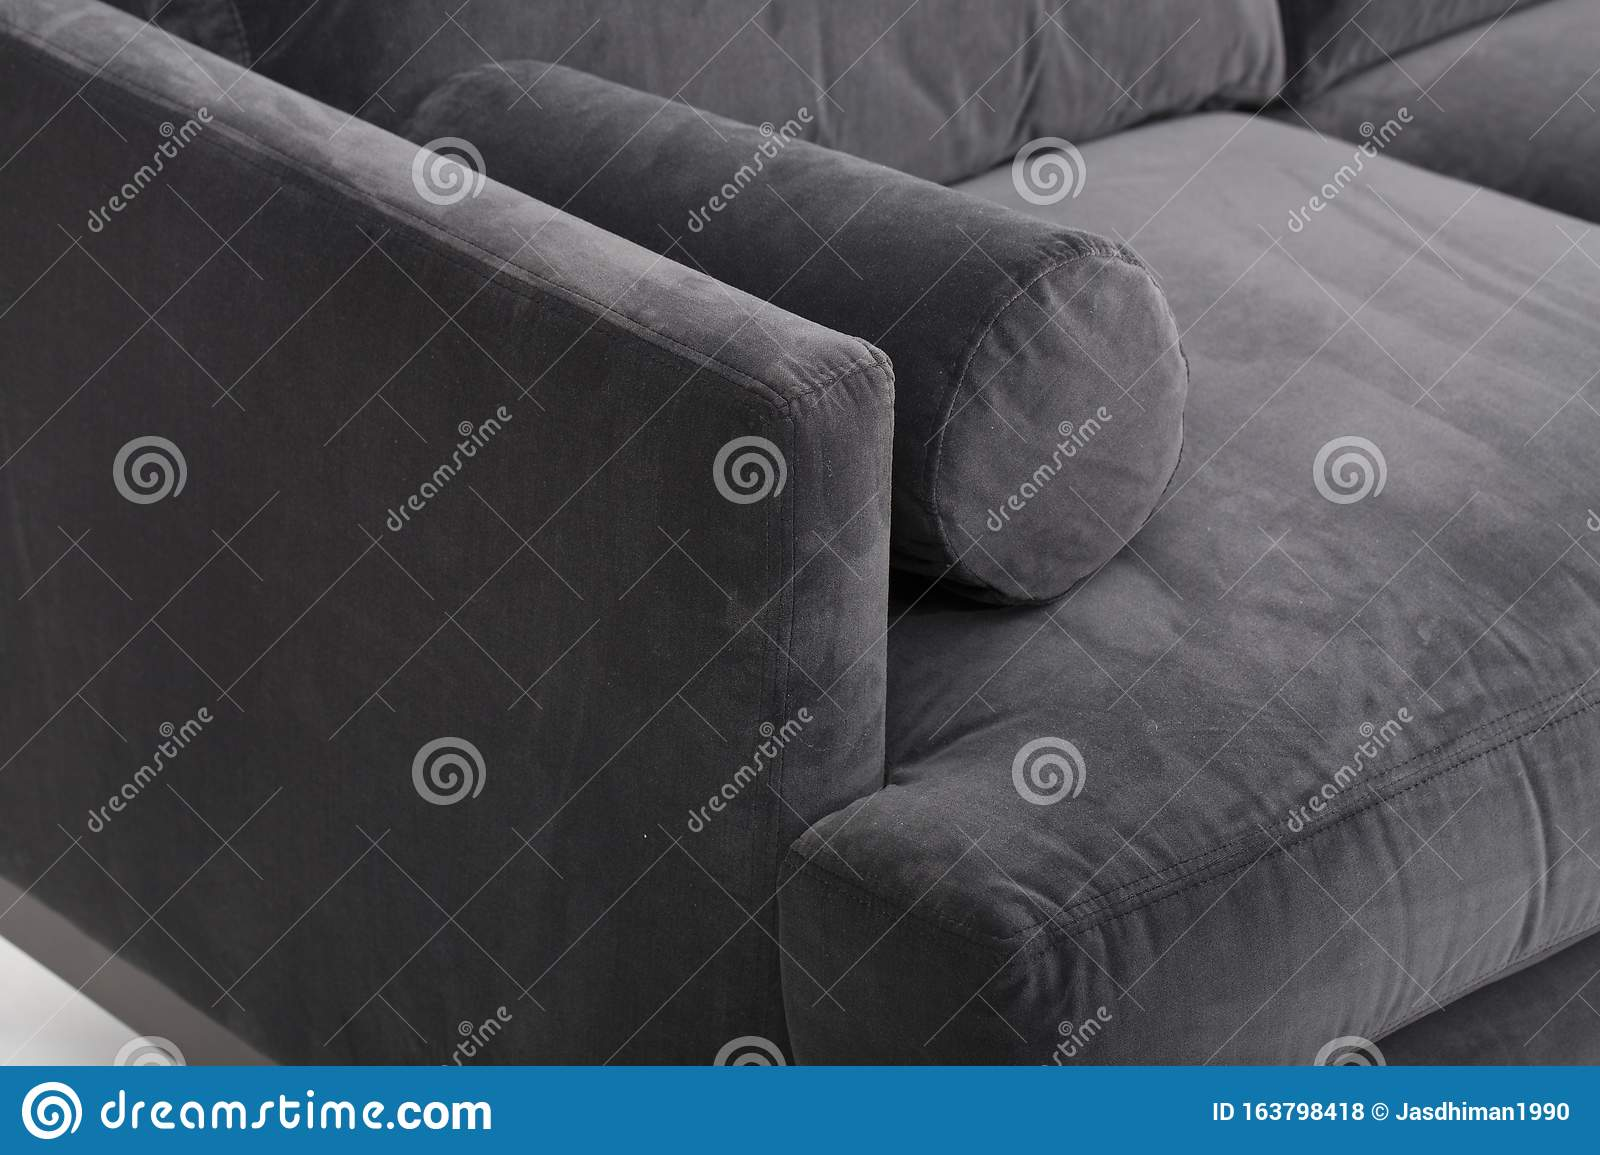 Best Choice Products Modern Faux Leather 3 Seat Modular Sofa With Sofa Bed Andrea Sofa Bed Black With White Background Stock Photo Image Of Room Interior 163798418